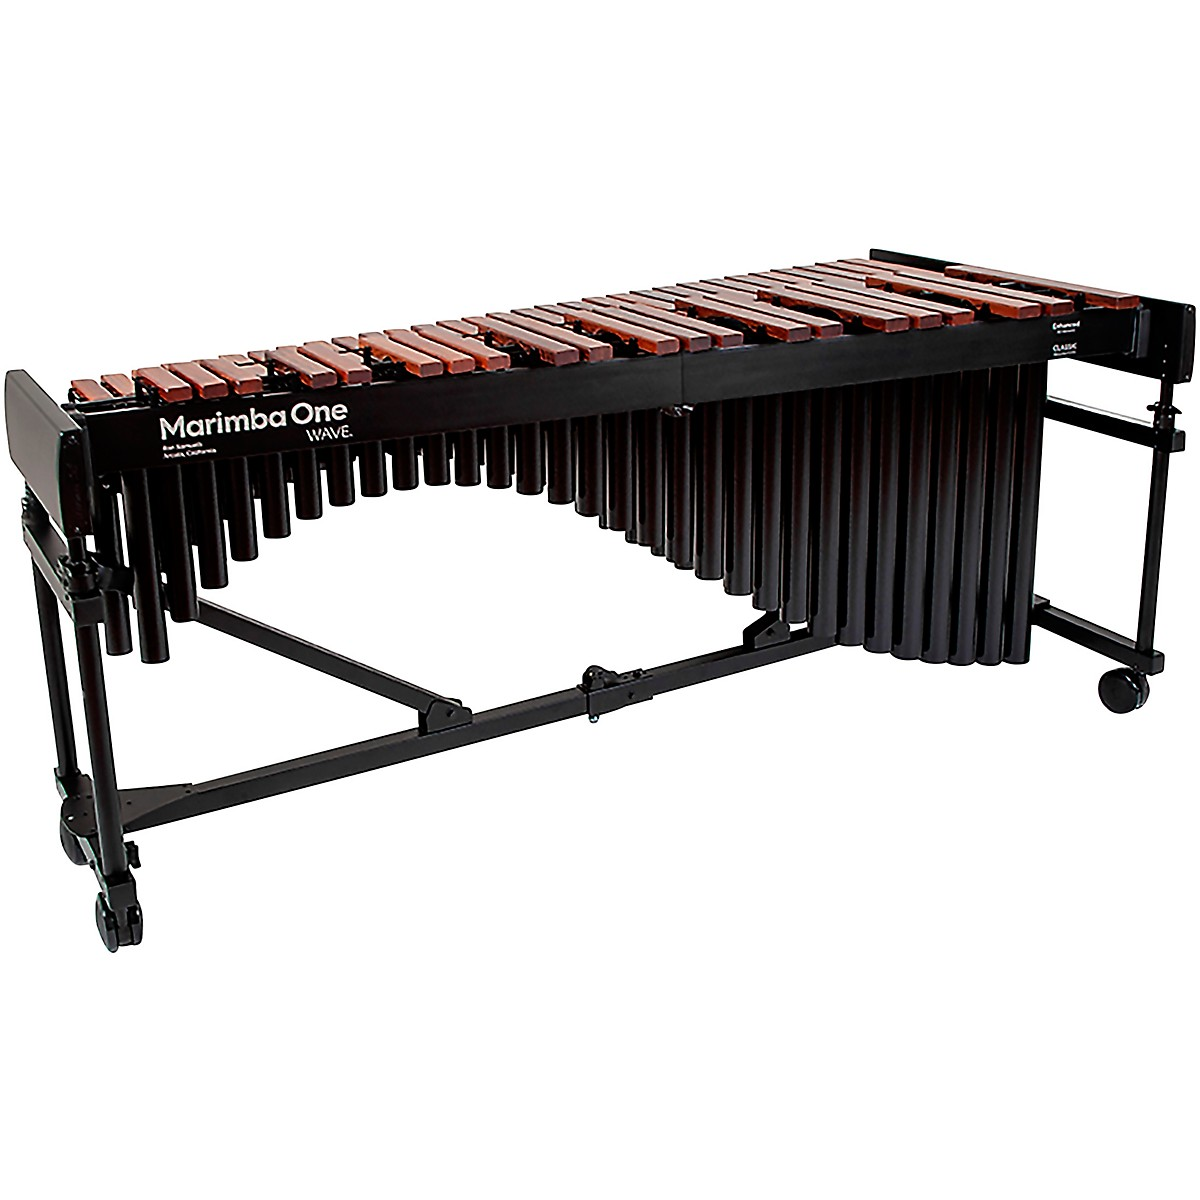 Marimba One Wave #9621 A440 4.3 Octave Marimba with Traditional Keyboard and Classic Resonators 4